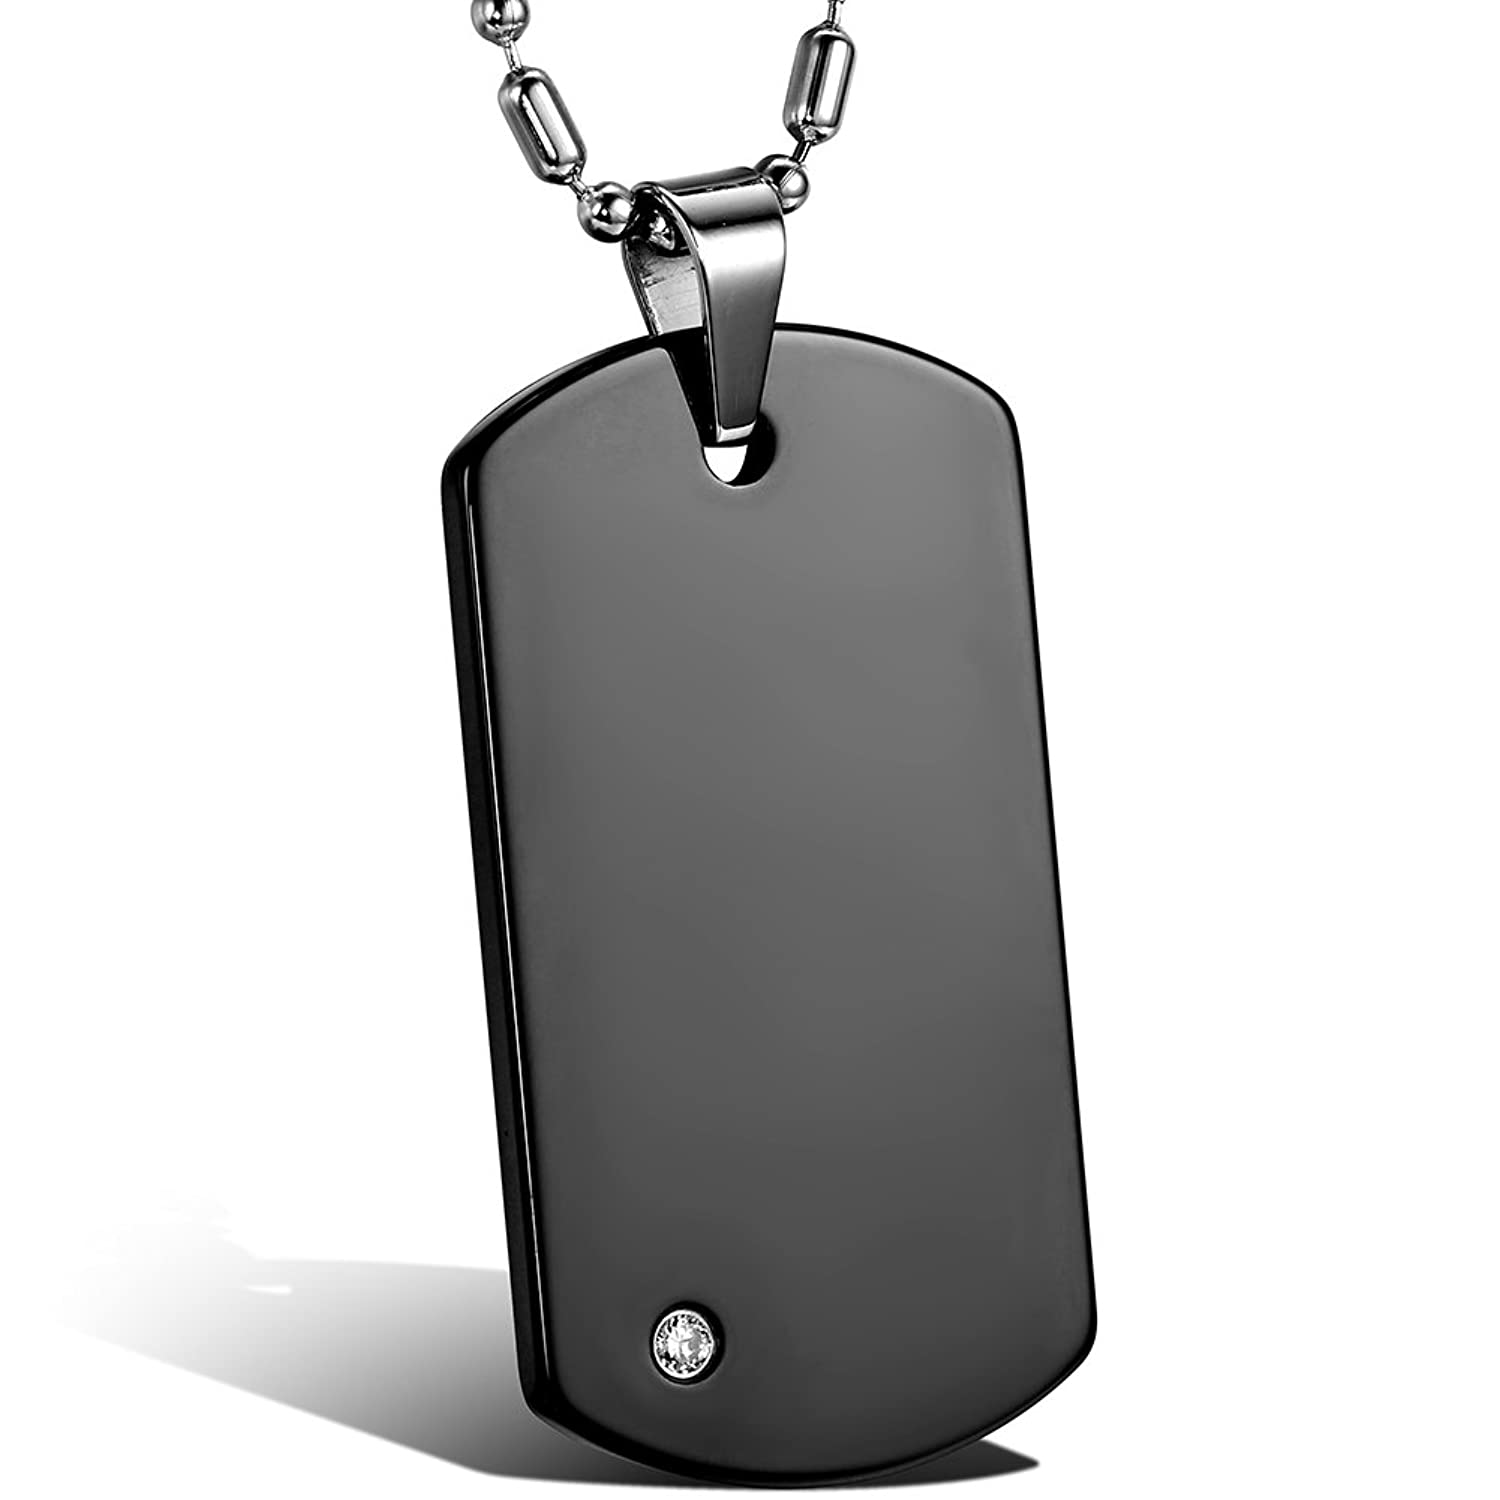 Jewelrywe polished engravable tungsten carbide mens dog tag pendant jewelrywe polished engravable tungsten carbide mens dog tag pendant necklace black 22 chain free customized engraving amazon jewellery aloadofball Choice Image